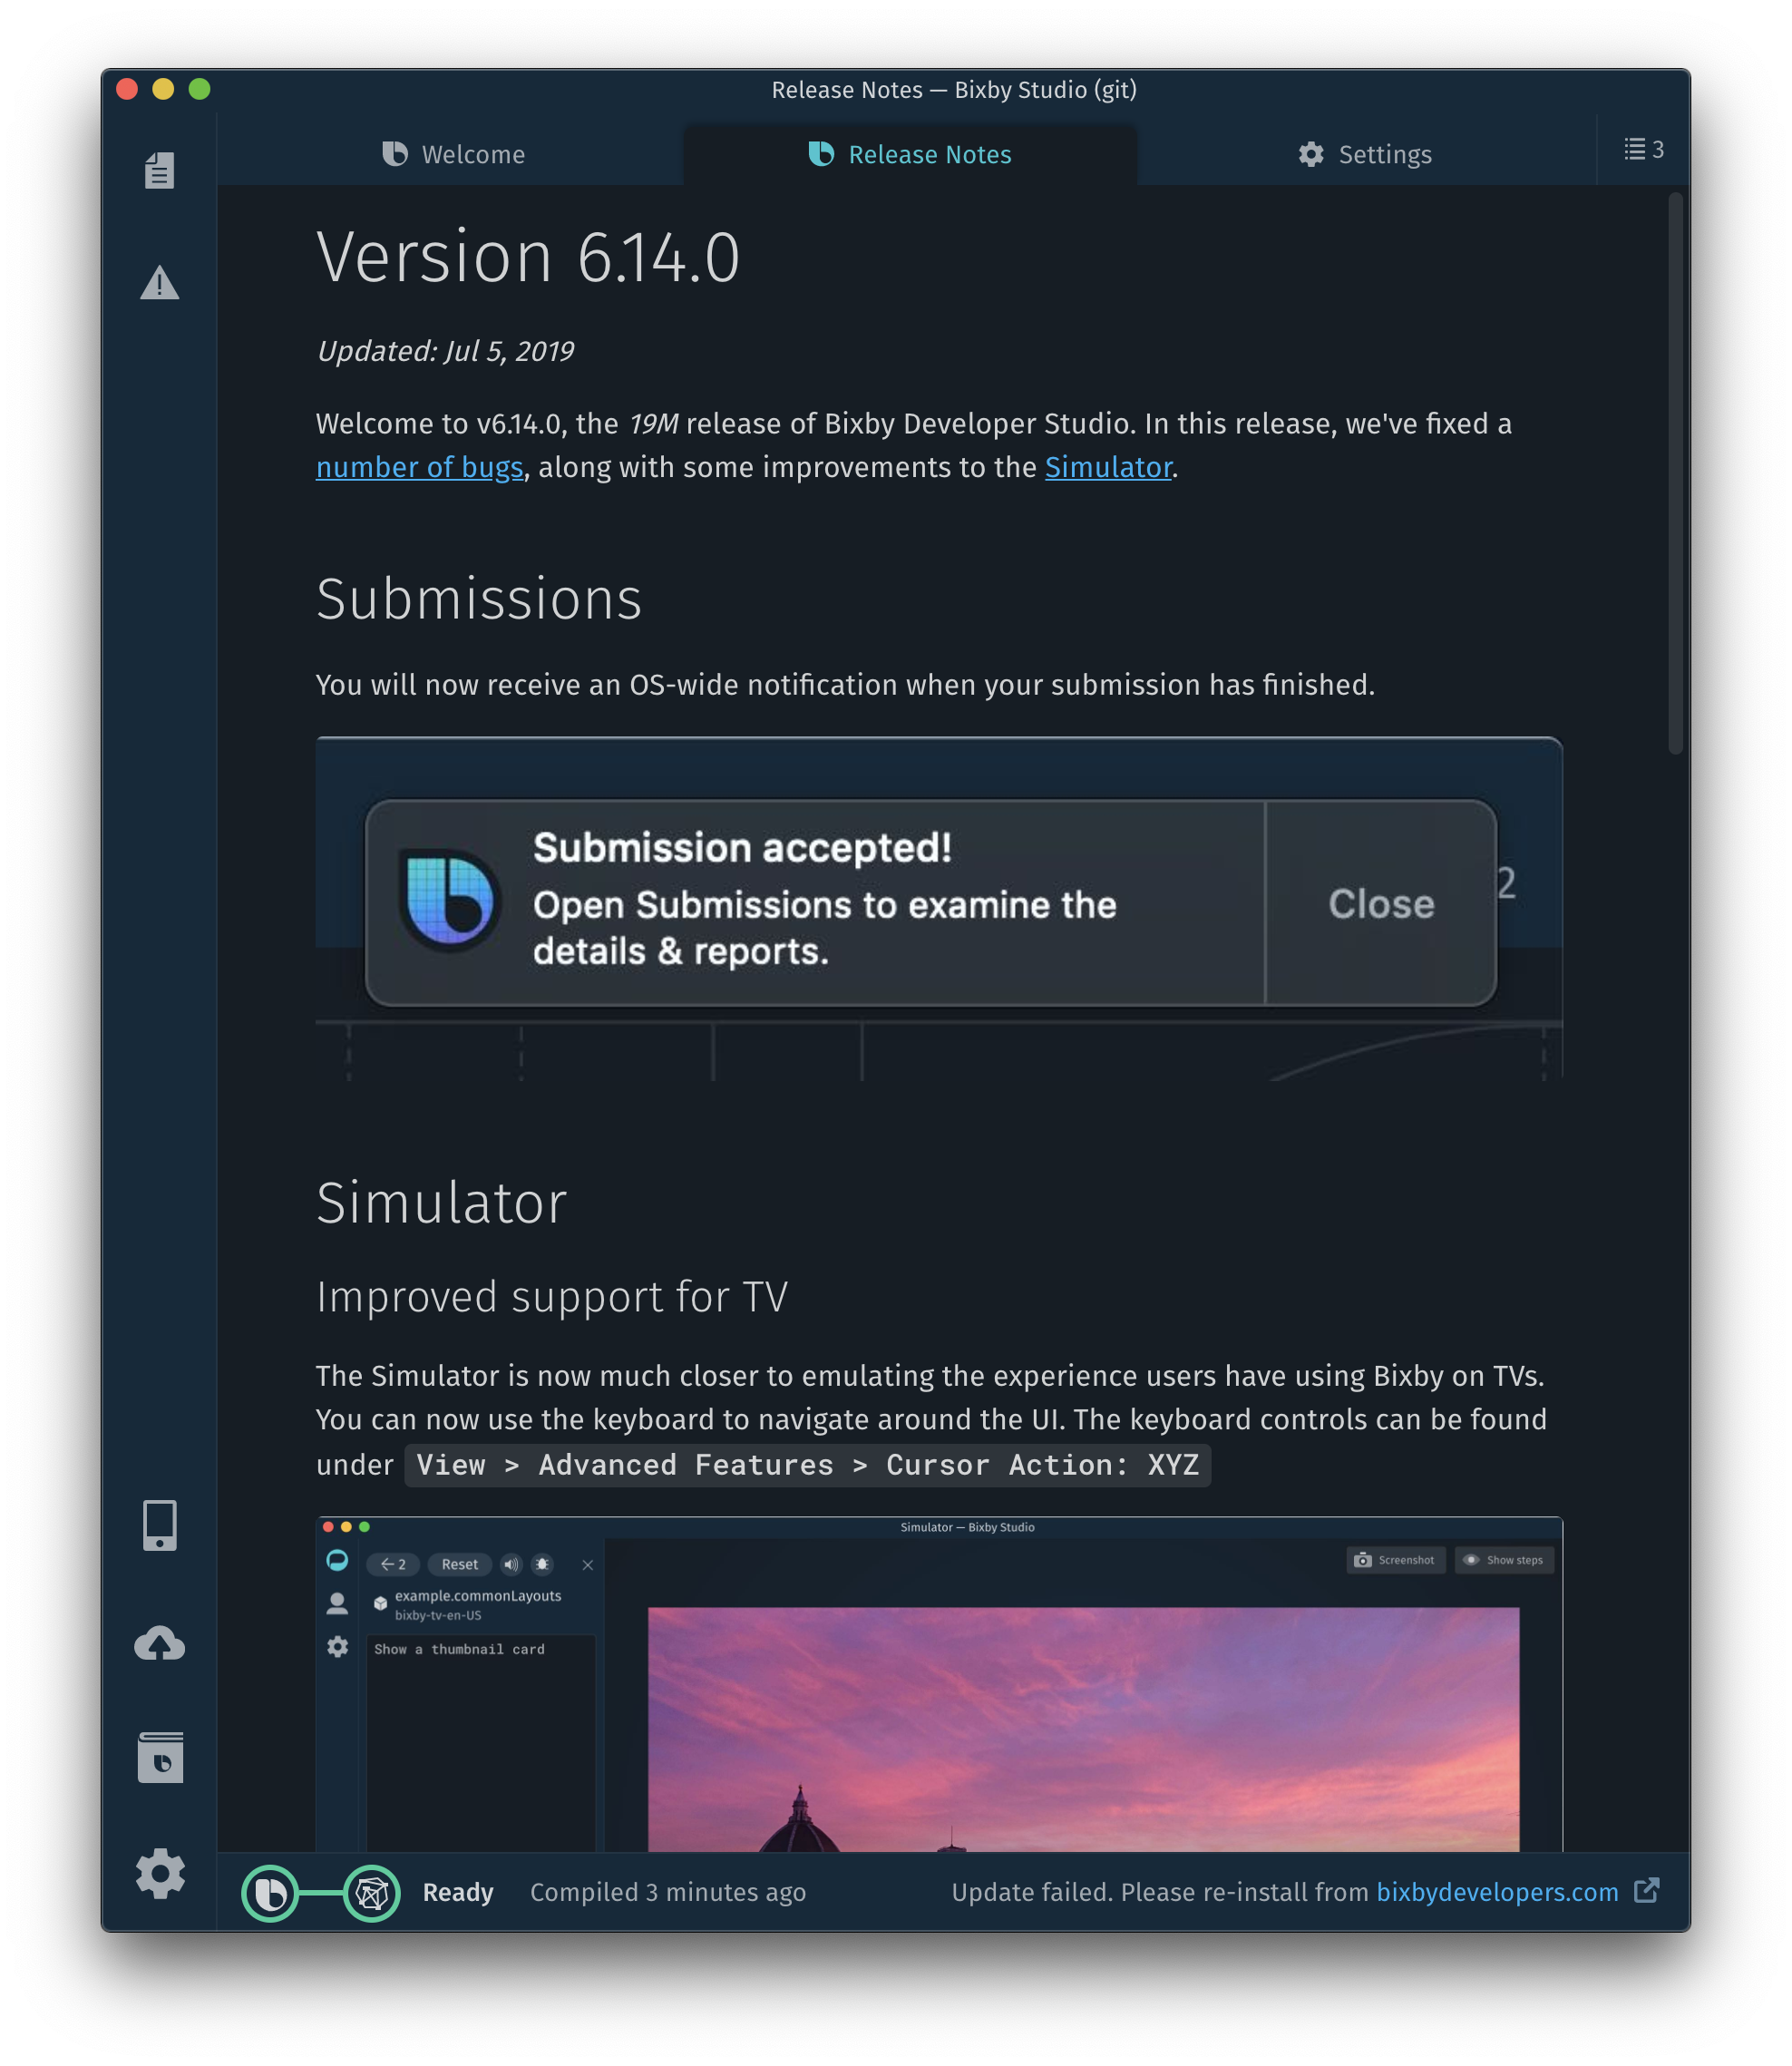 Release notes tab